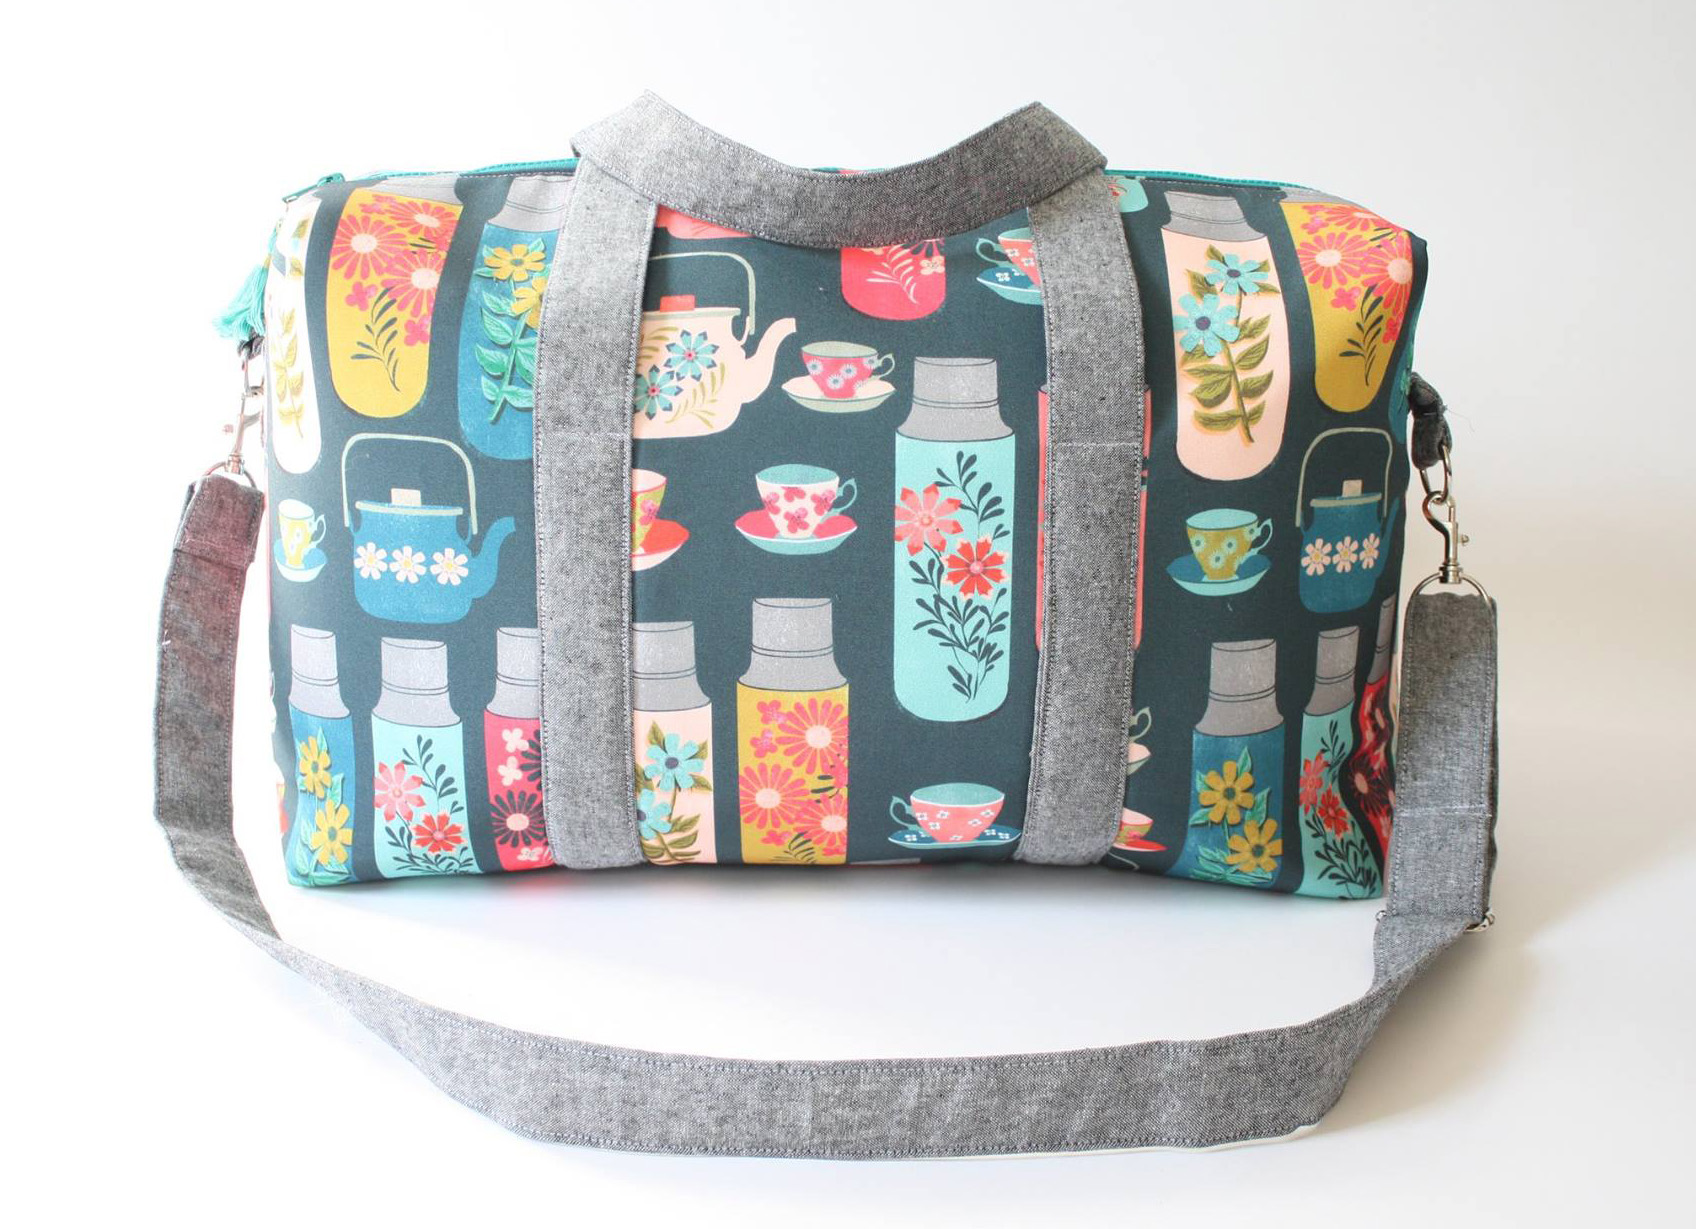 Sew Sweetness Emblem Duffle Bag, sewn by Natalie of Hungry Hippie